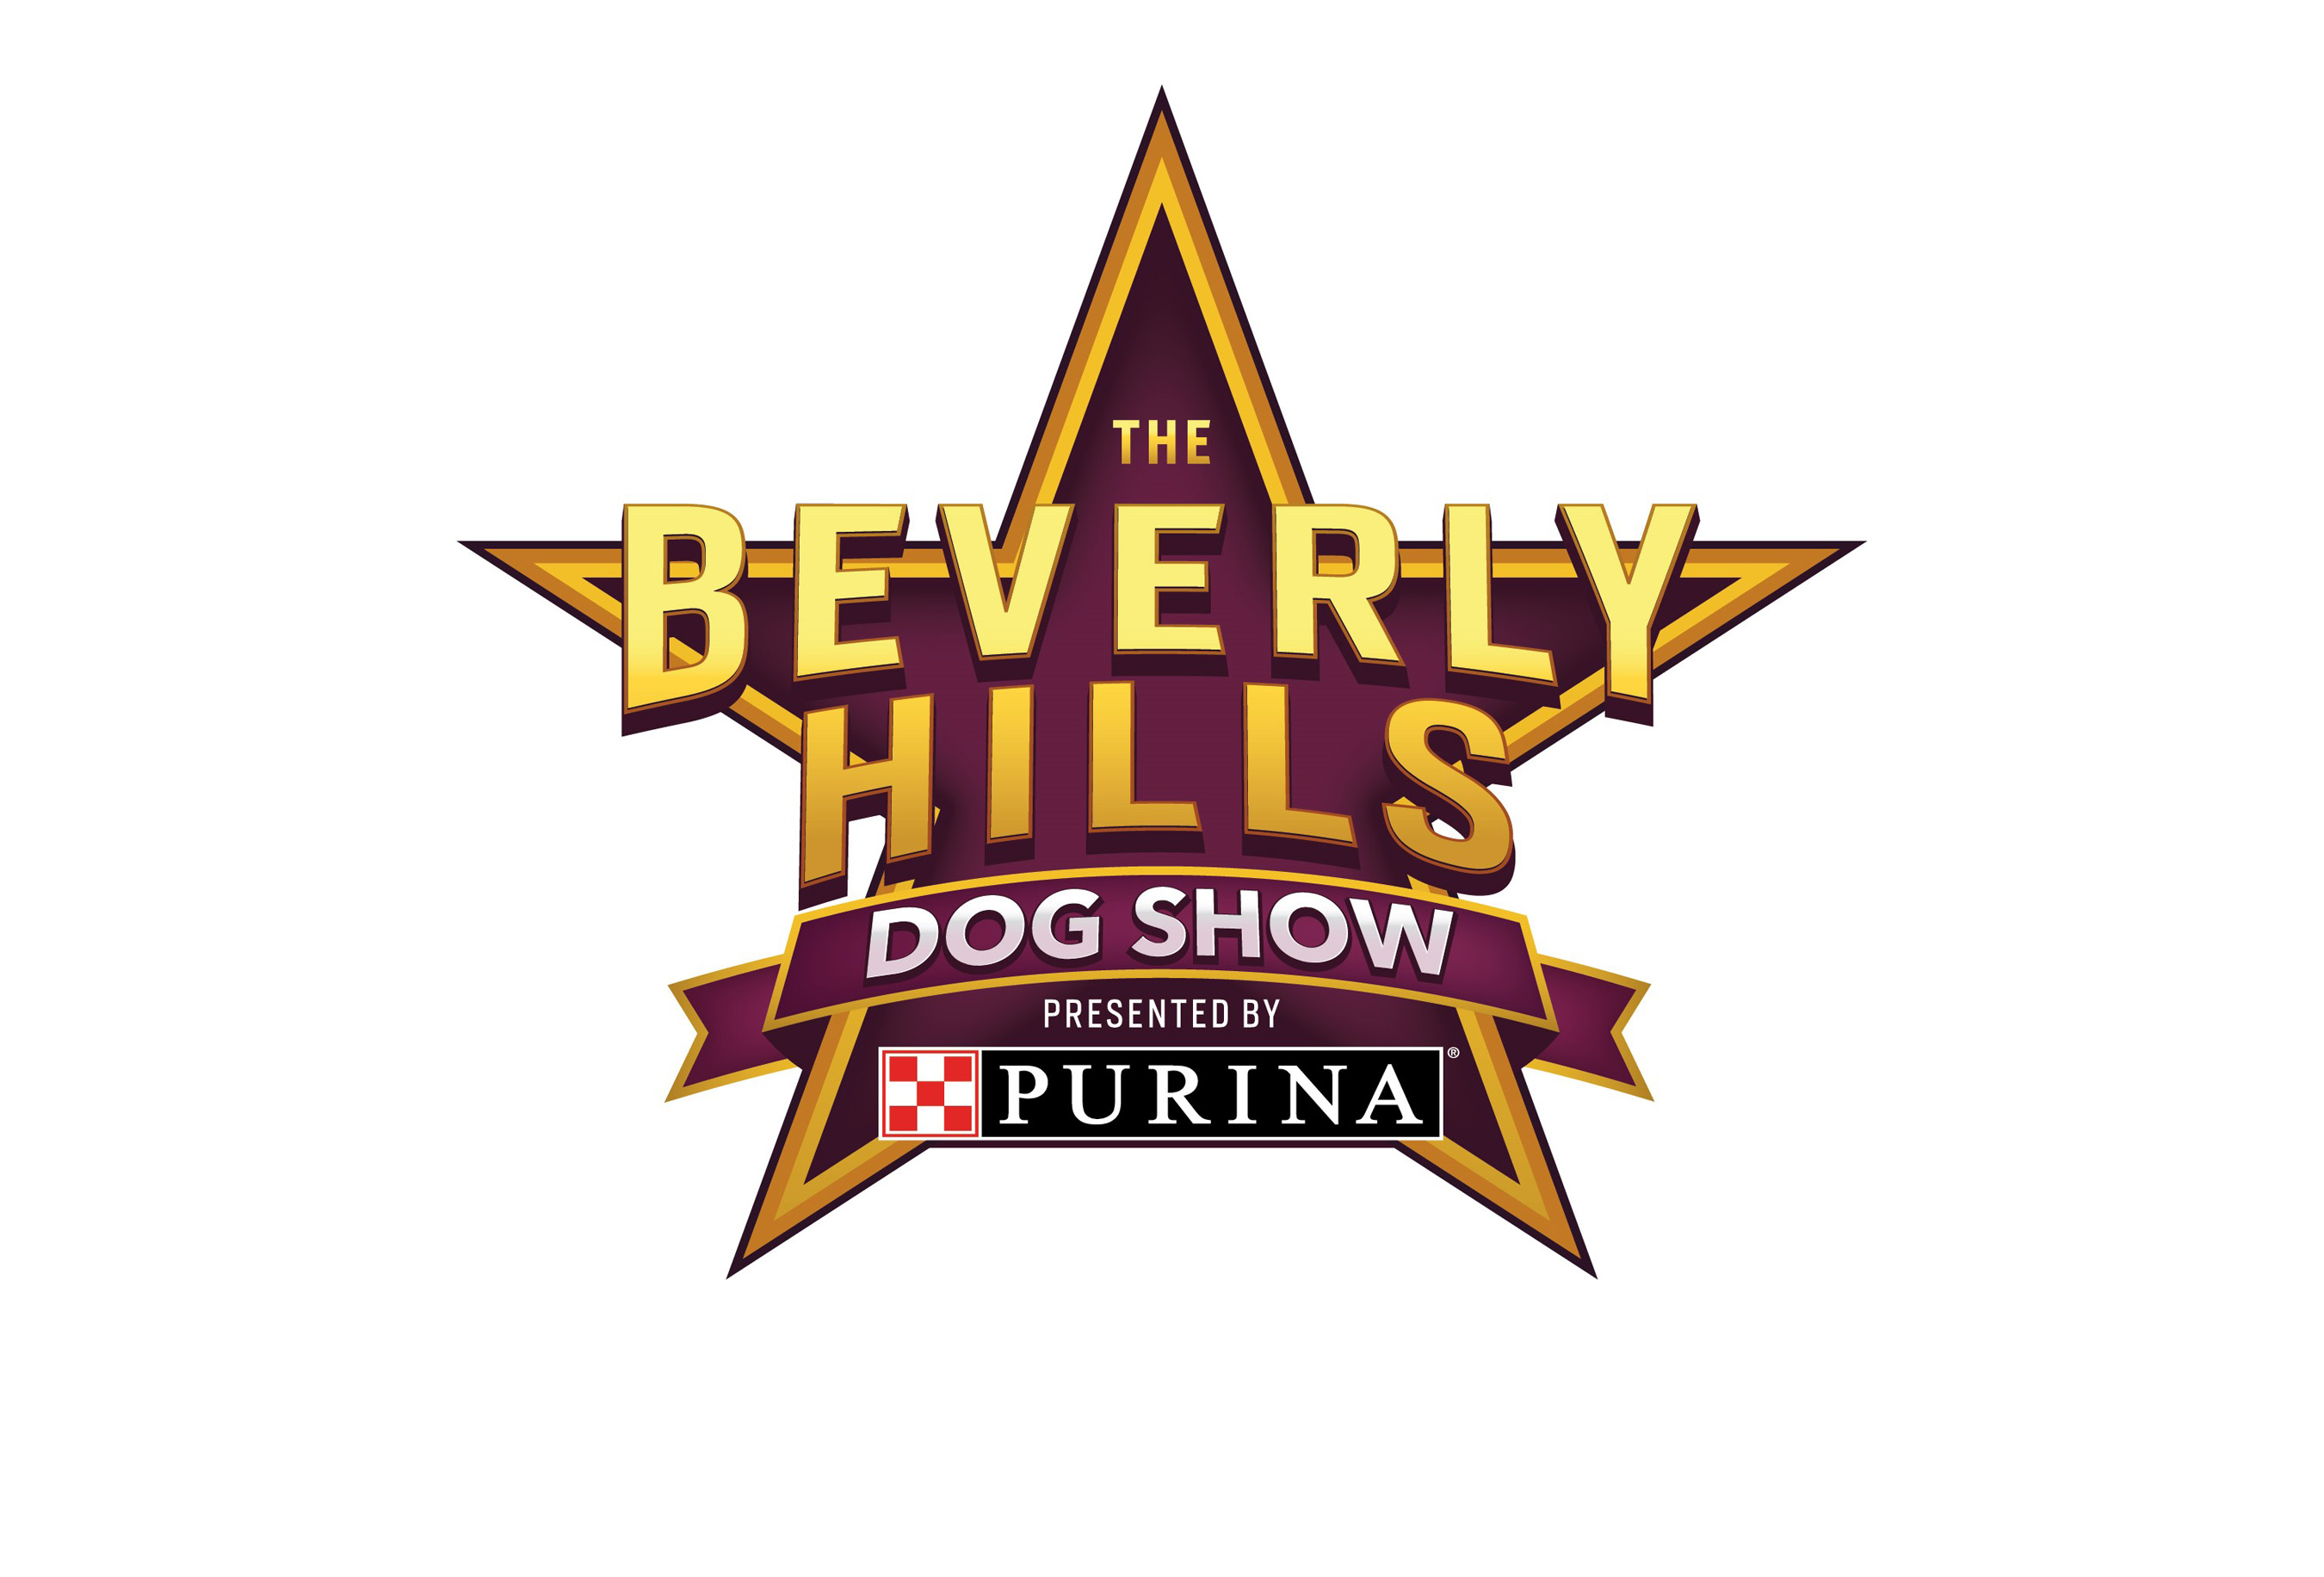 The Beverly Hills Dog Show Presented by Purina will air on April 21, Easter Sunday, on NBC at 1 p.m. ET / 10 a.m. PT.